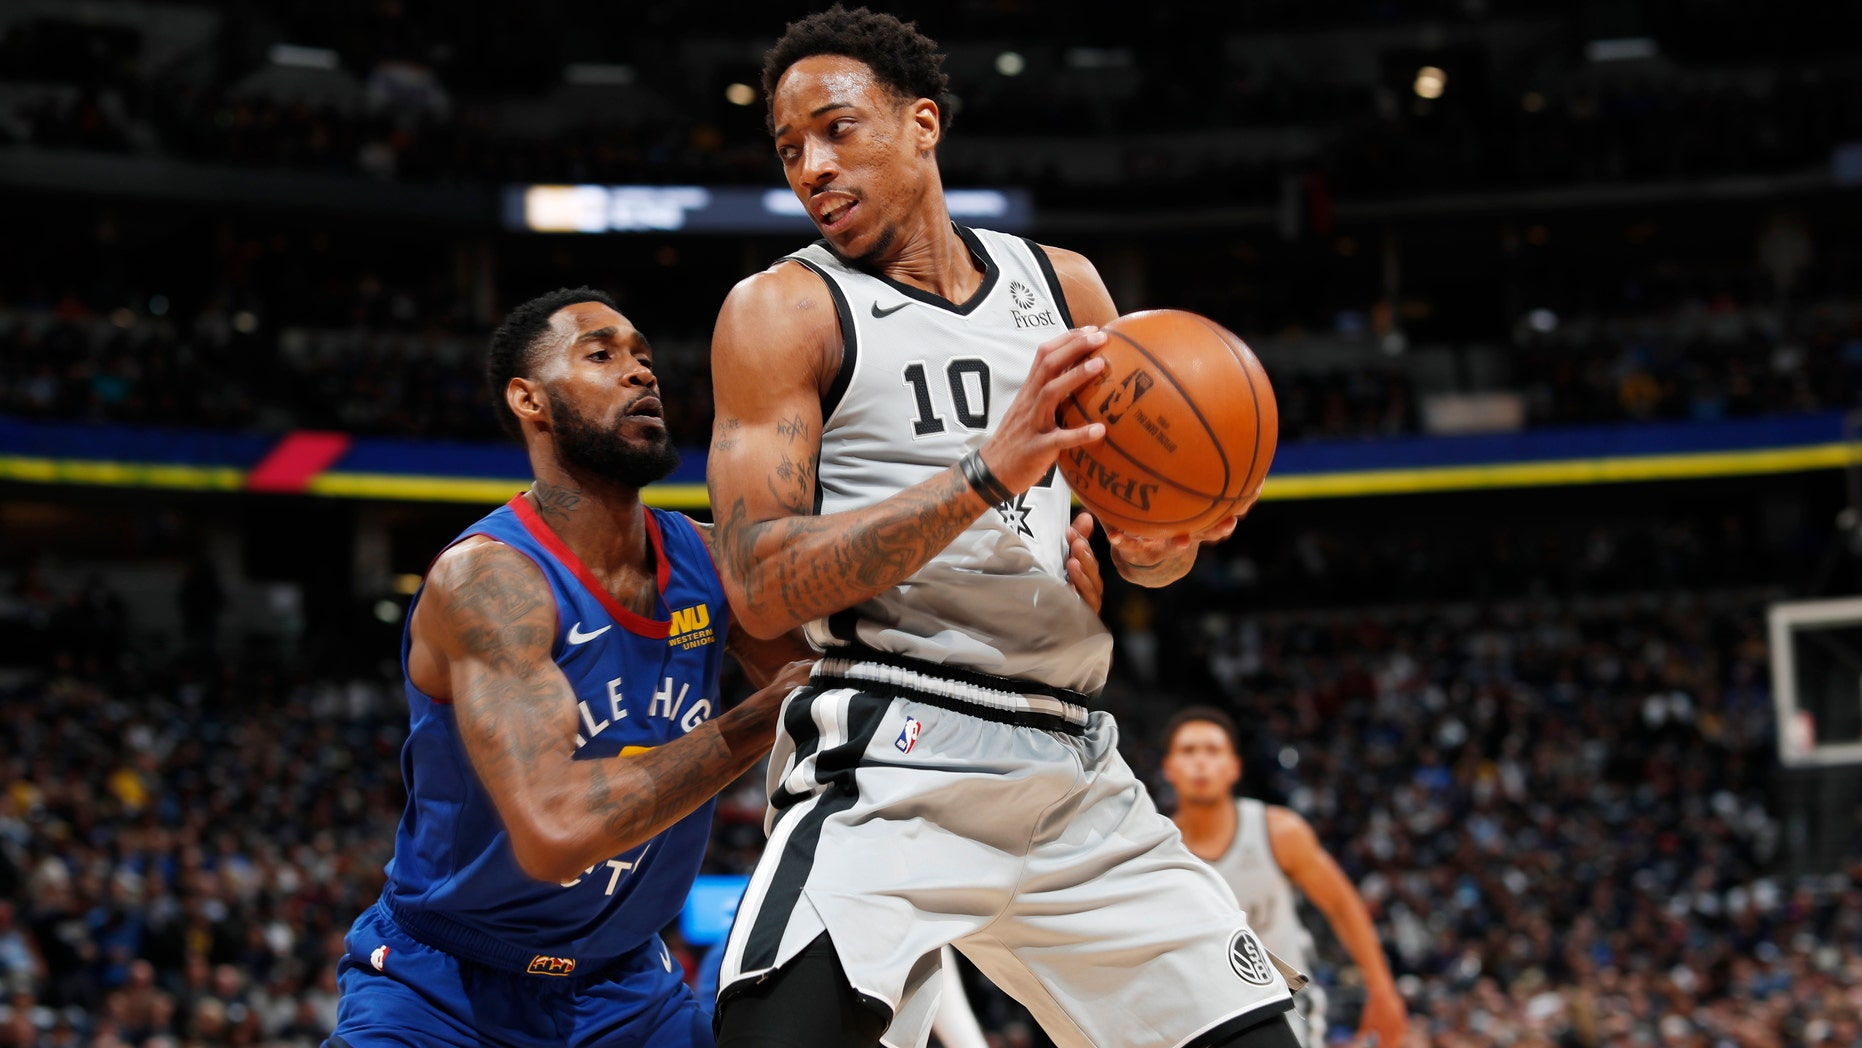 Denver Nuggets guard Will Barton, left, defends against San Antonio Spurs guard DeMar DeRozan during the first half of Game 1 of an NBA first-round basketball playoff series Saturday, April 13, 2019, in Denver. (AP Photo/David Zalubowski)